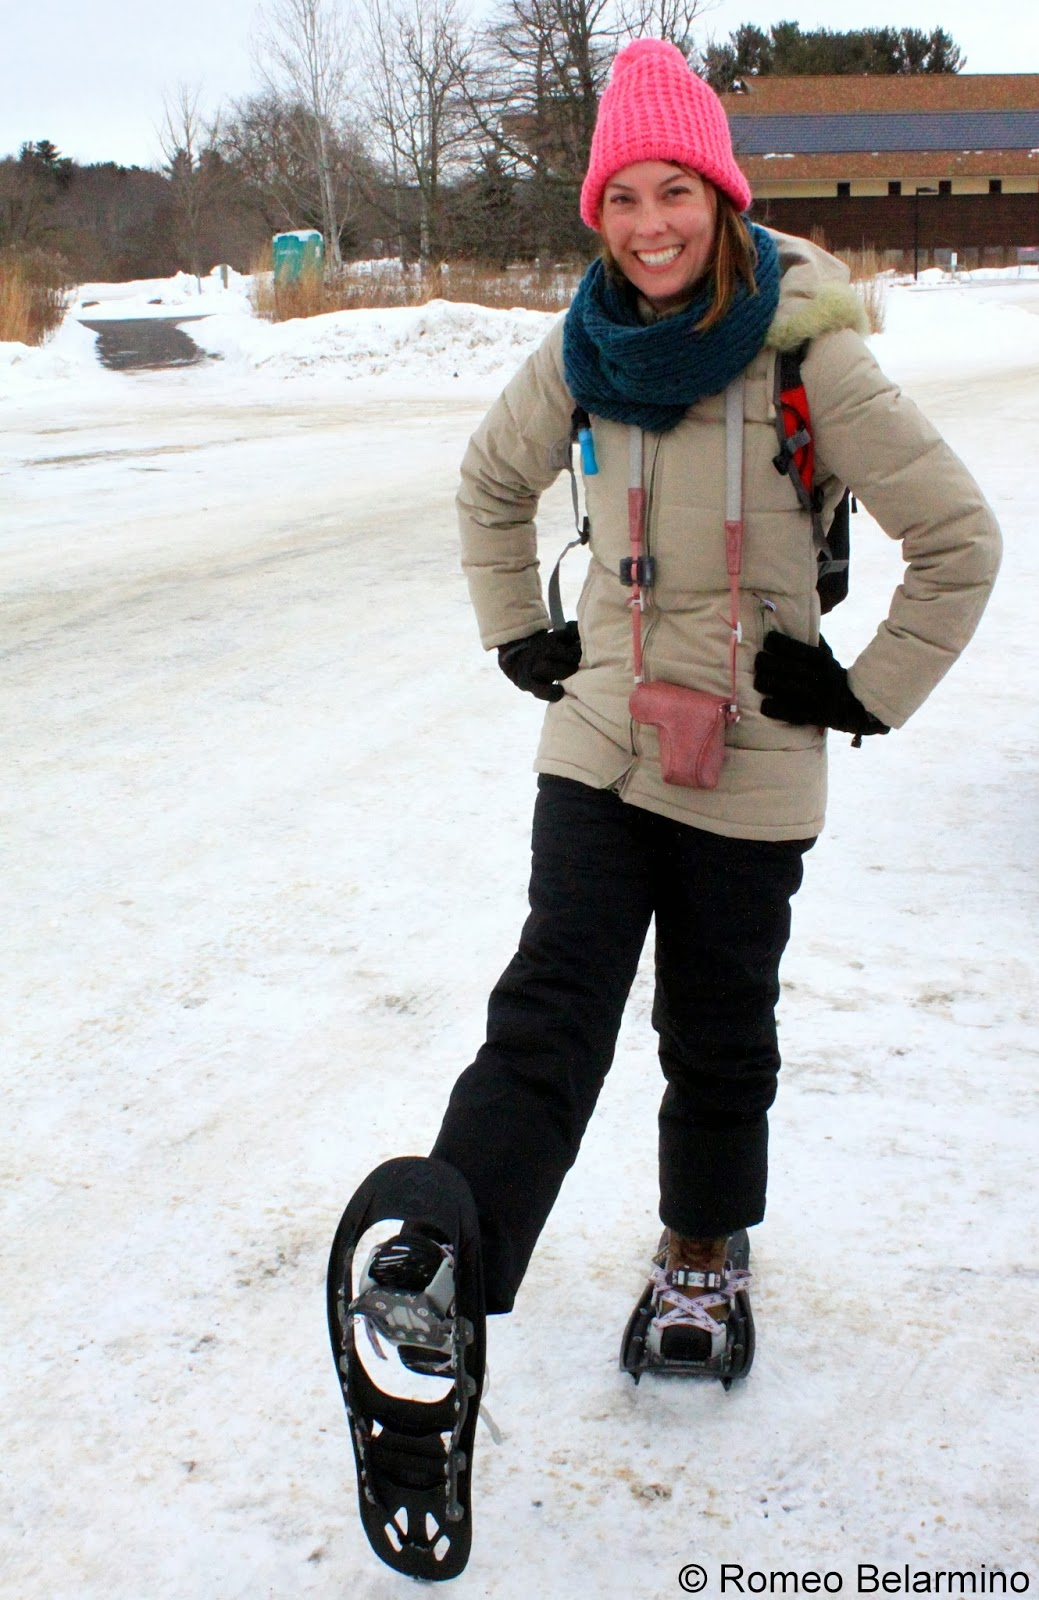 Winter Travel Packing Tips - Uggs, Gloves, Snowpants